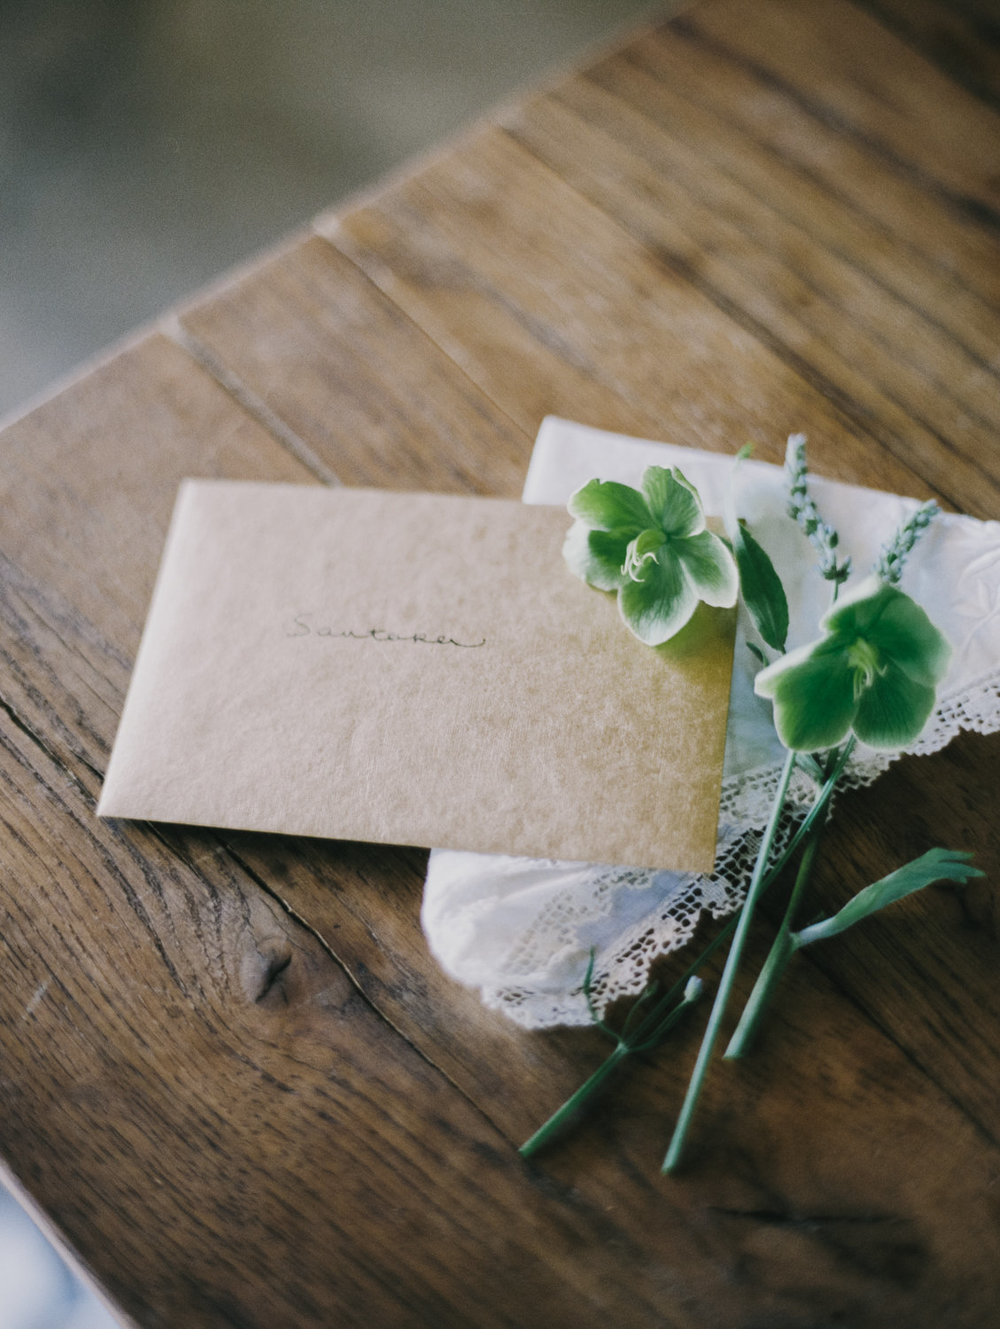 We always leave a note to the bride thanking her for letting us be a part of her special day, listing all the flowers that are in her bouquet, and we often leave behind a vintage hankie to wipe the stems dry.